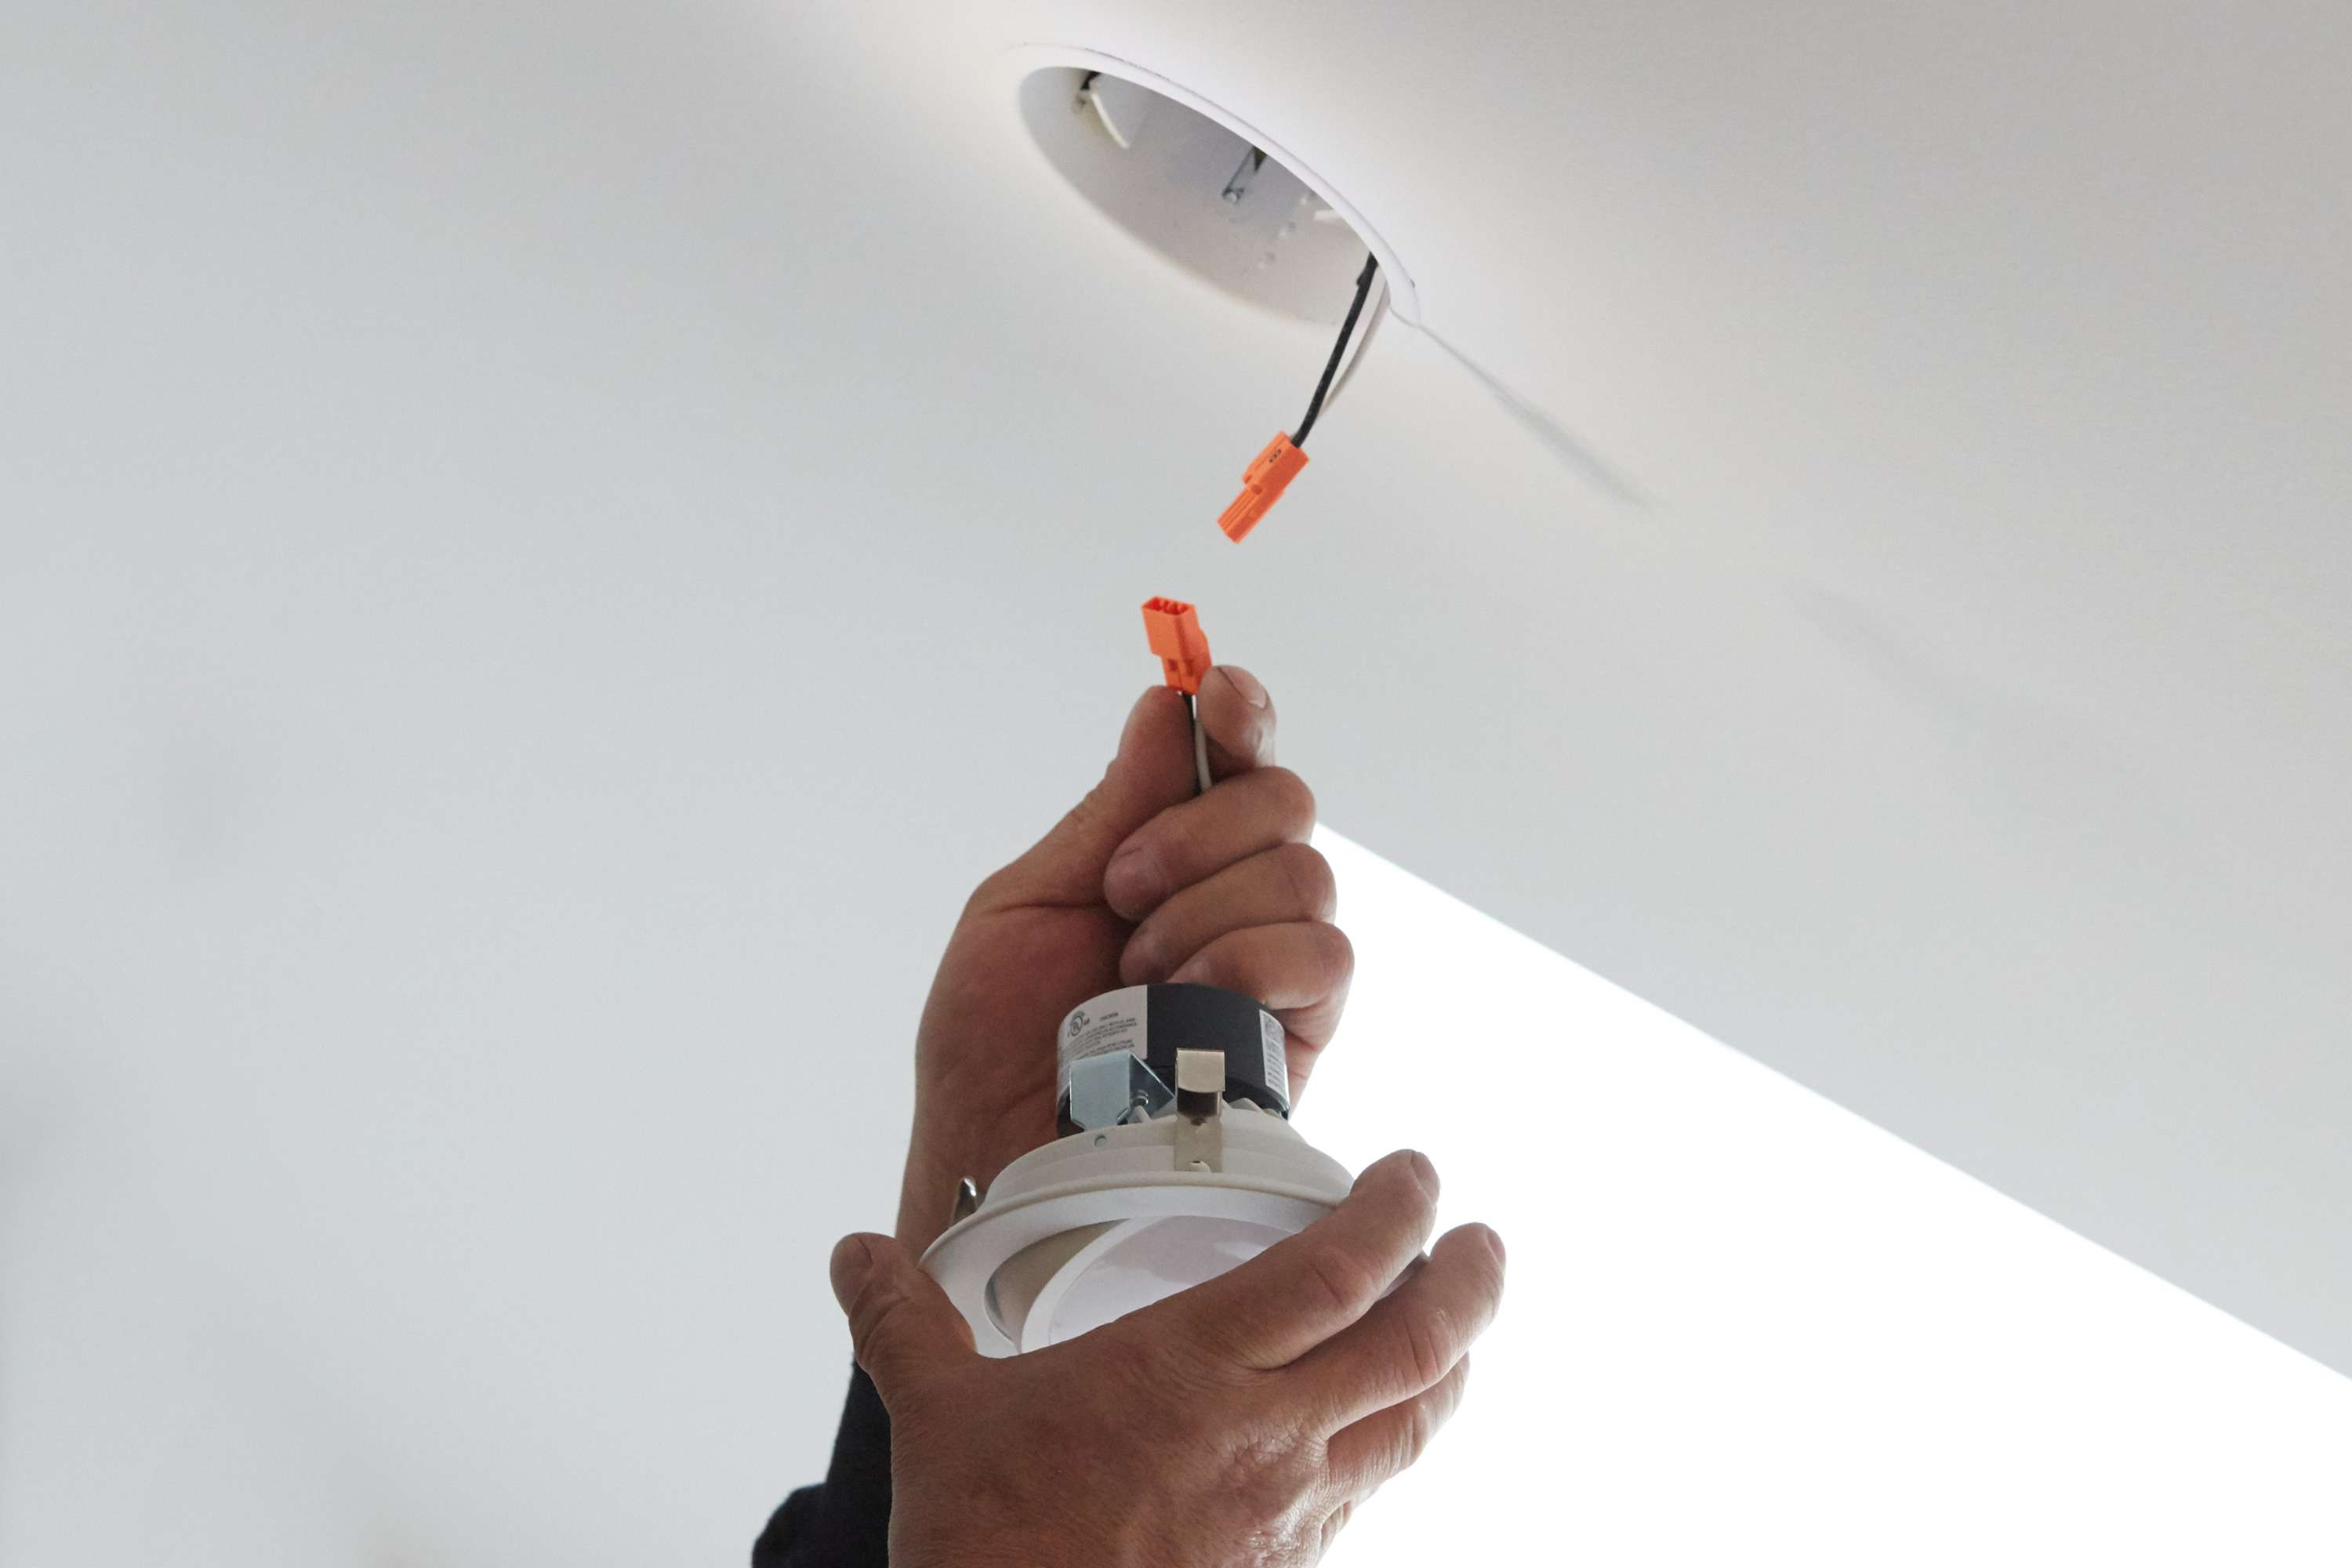 Recessed lighting fixture installed with orange snaps on opposing wires